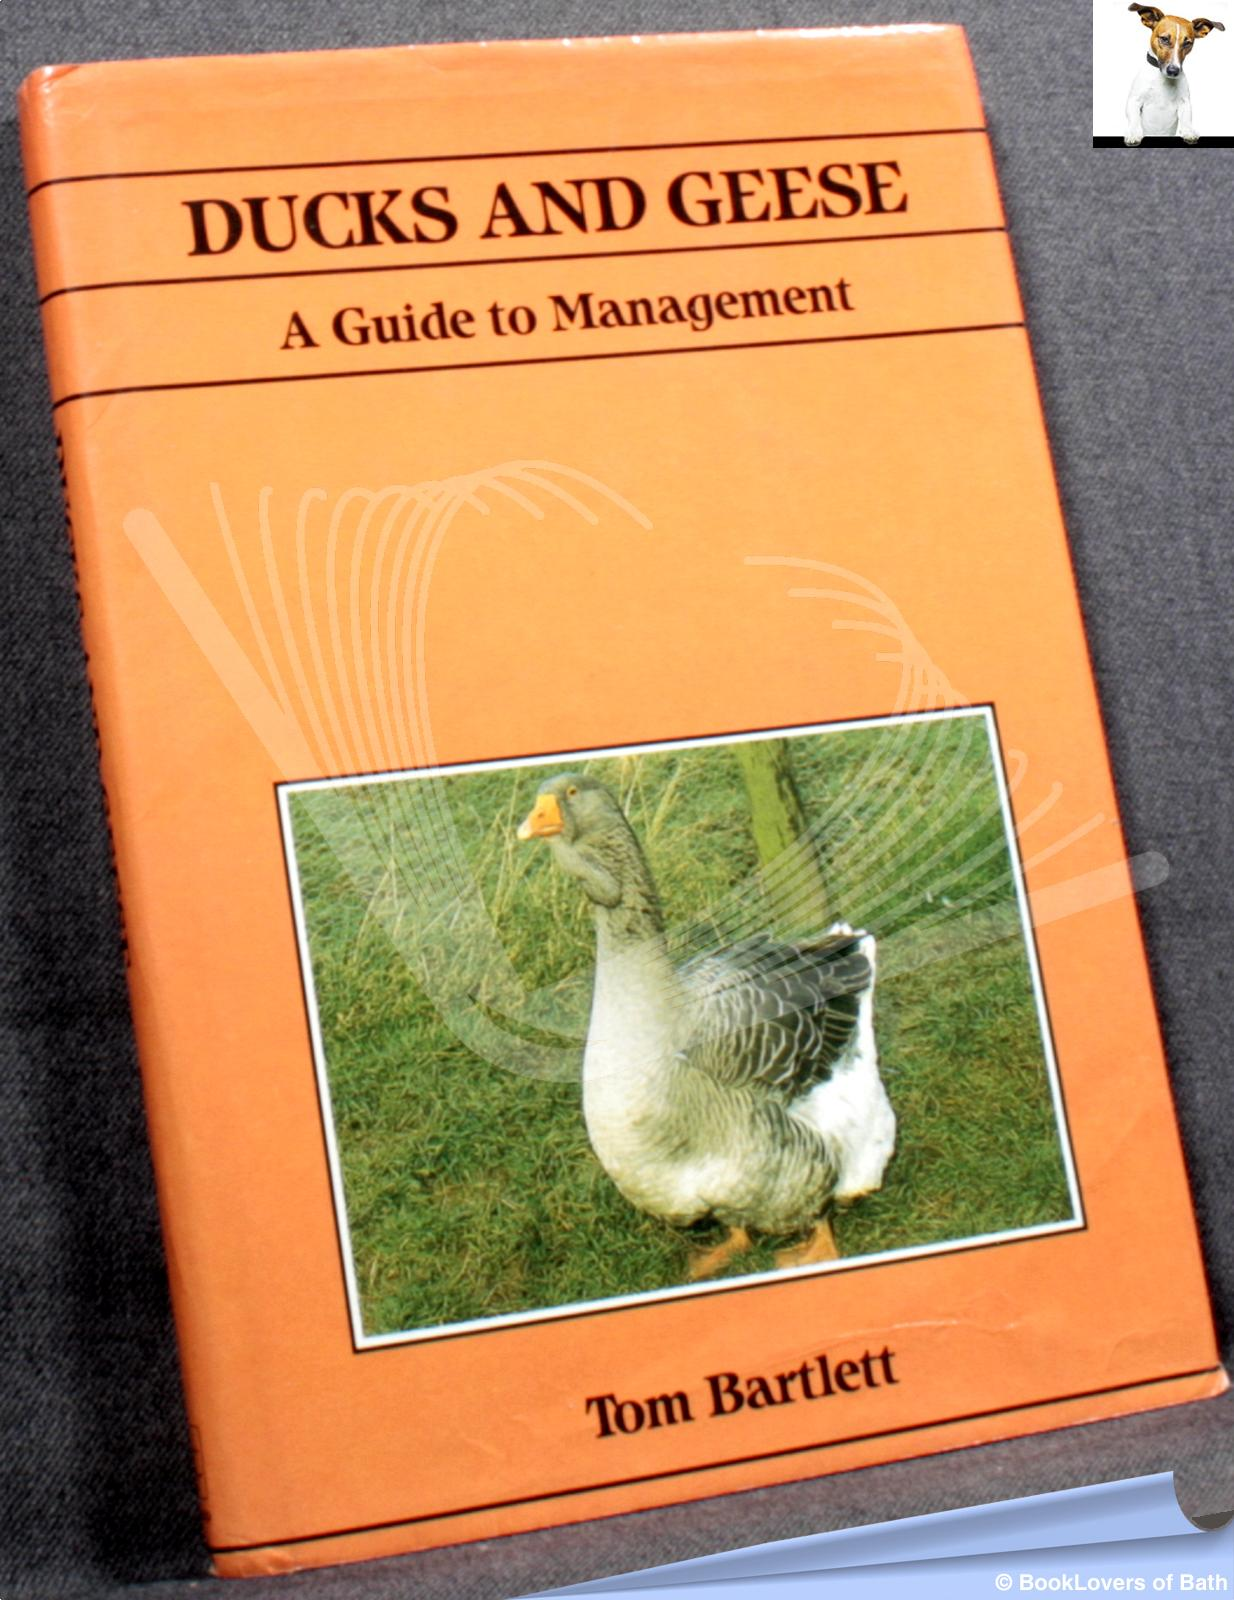 Ducks and Geese: Guide to Management - Tom Bartlett